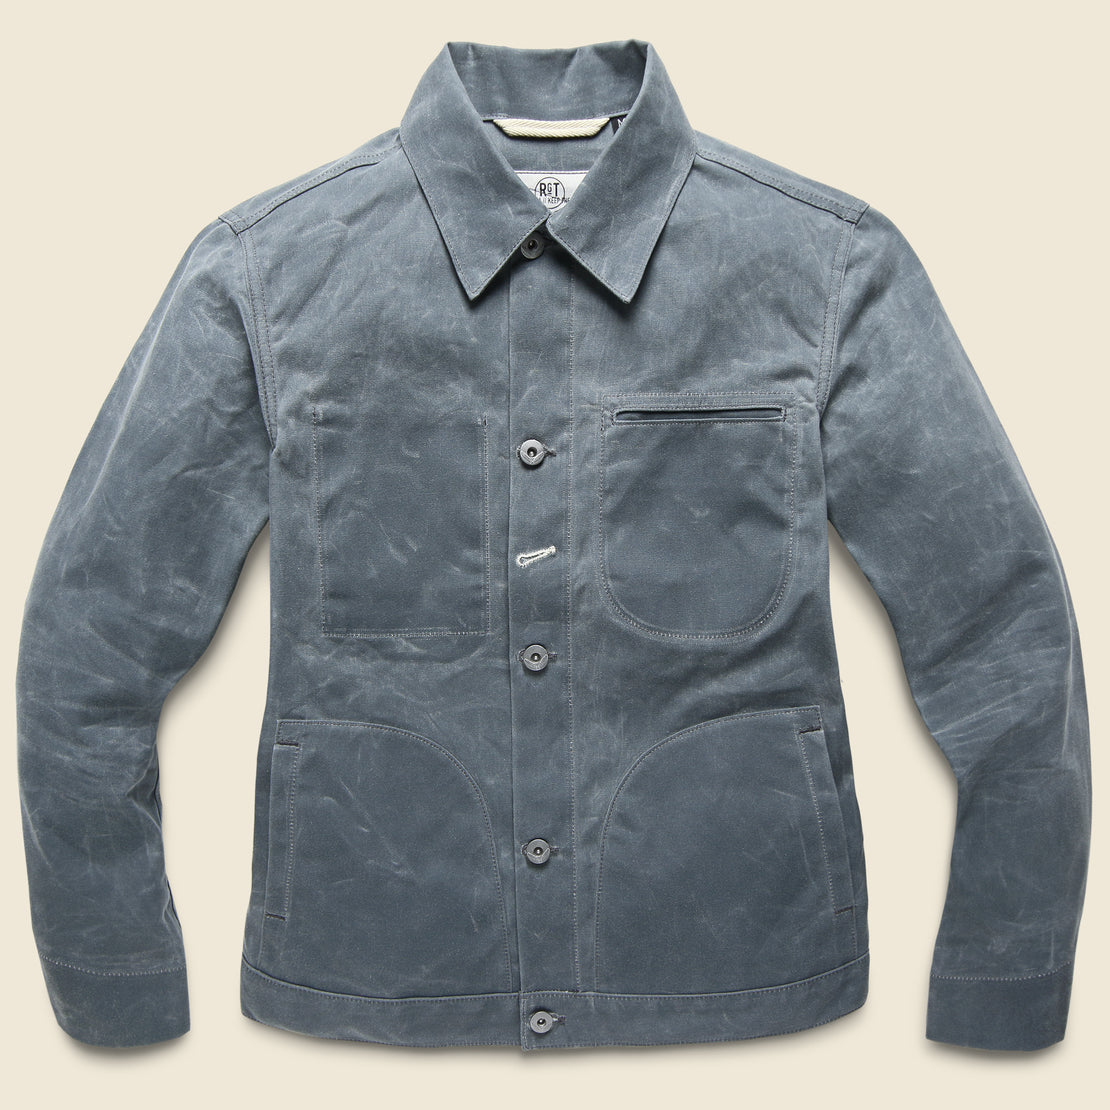 Rogue Territory Supply Jacket - Waxed Grey Ridgeline